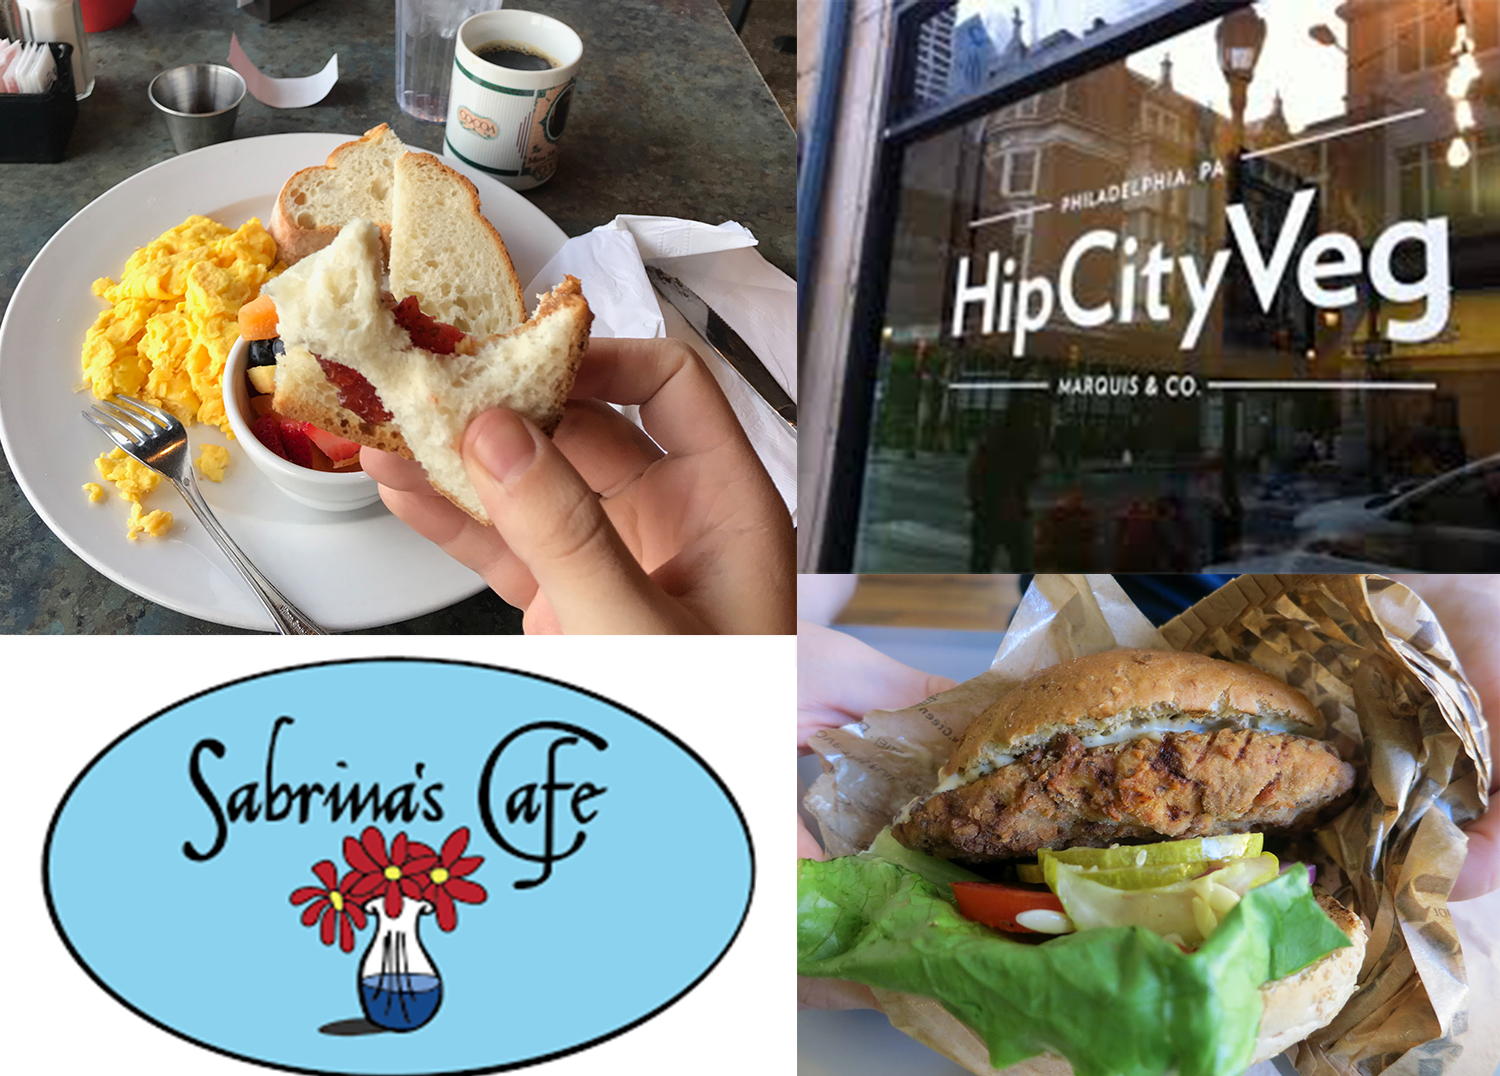 Whenever I need to eat out while at college in Philly, Sabrina's Cafe and Hip City Veg have always been there to accommodate my allergy.